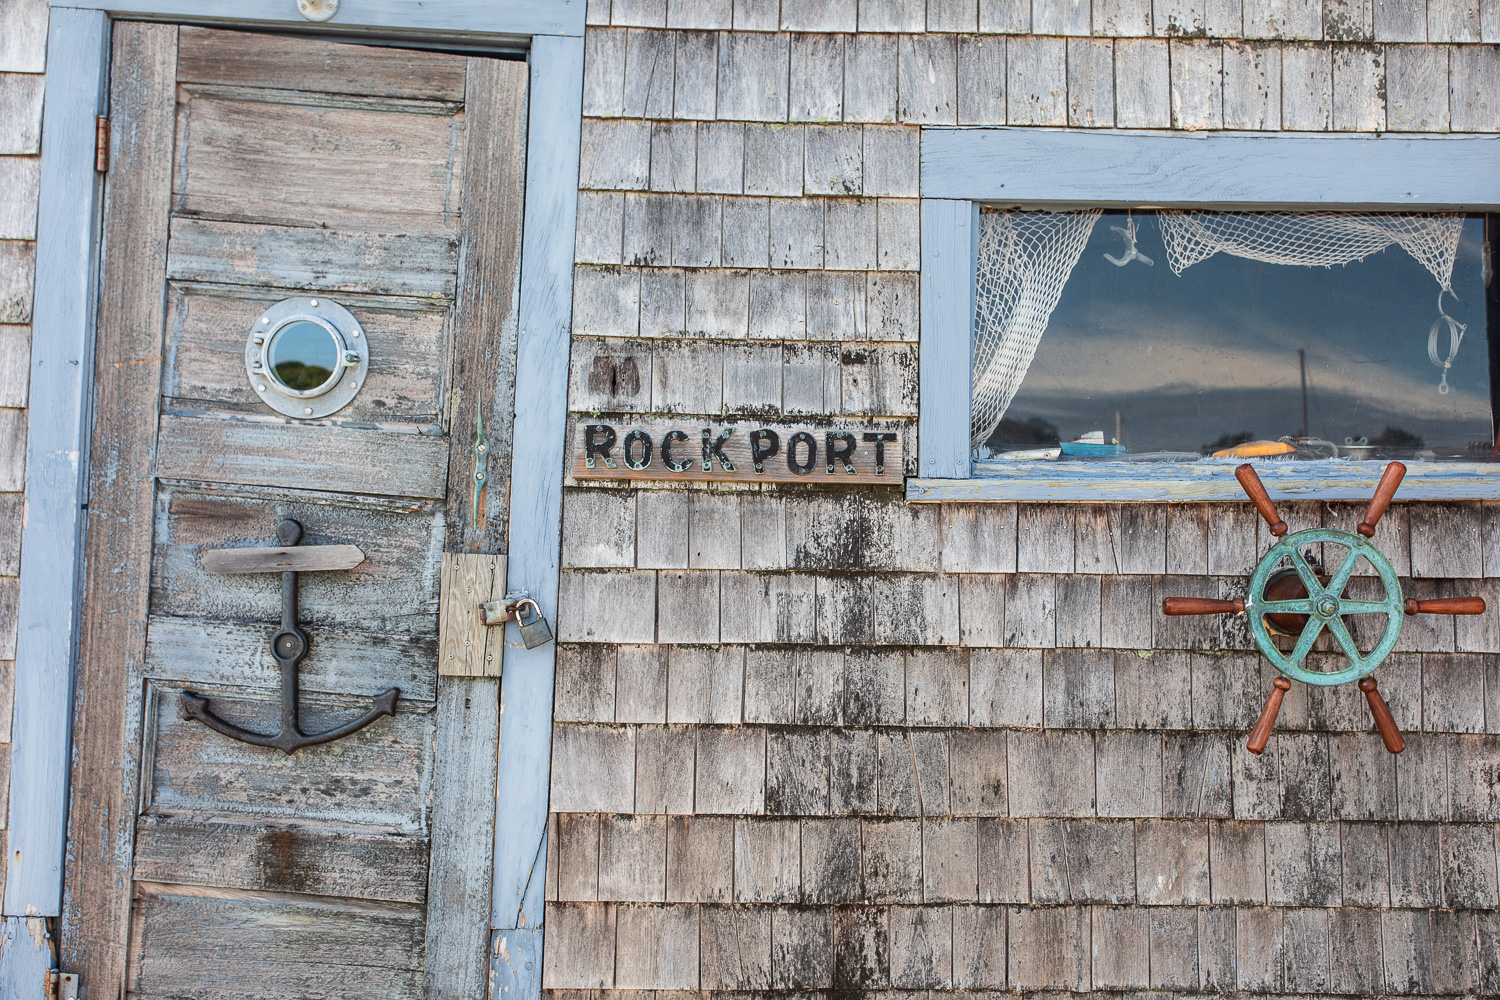 A shed directly across from Motif Number 1 reminds you that you're in a fishing village.